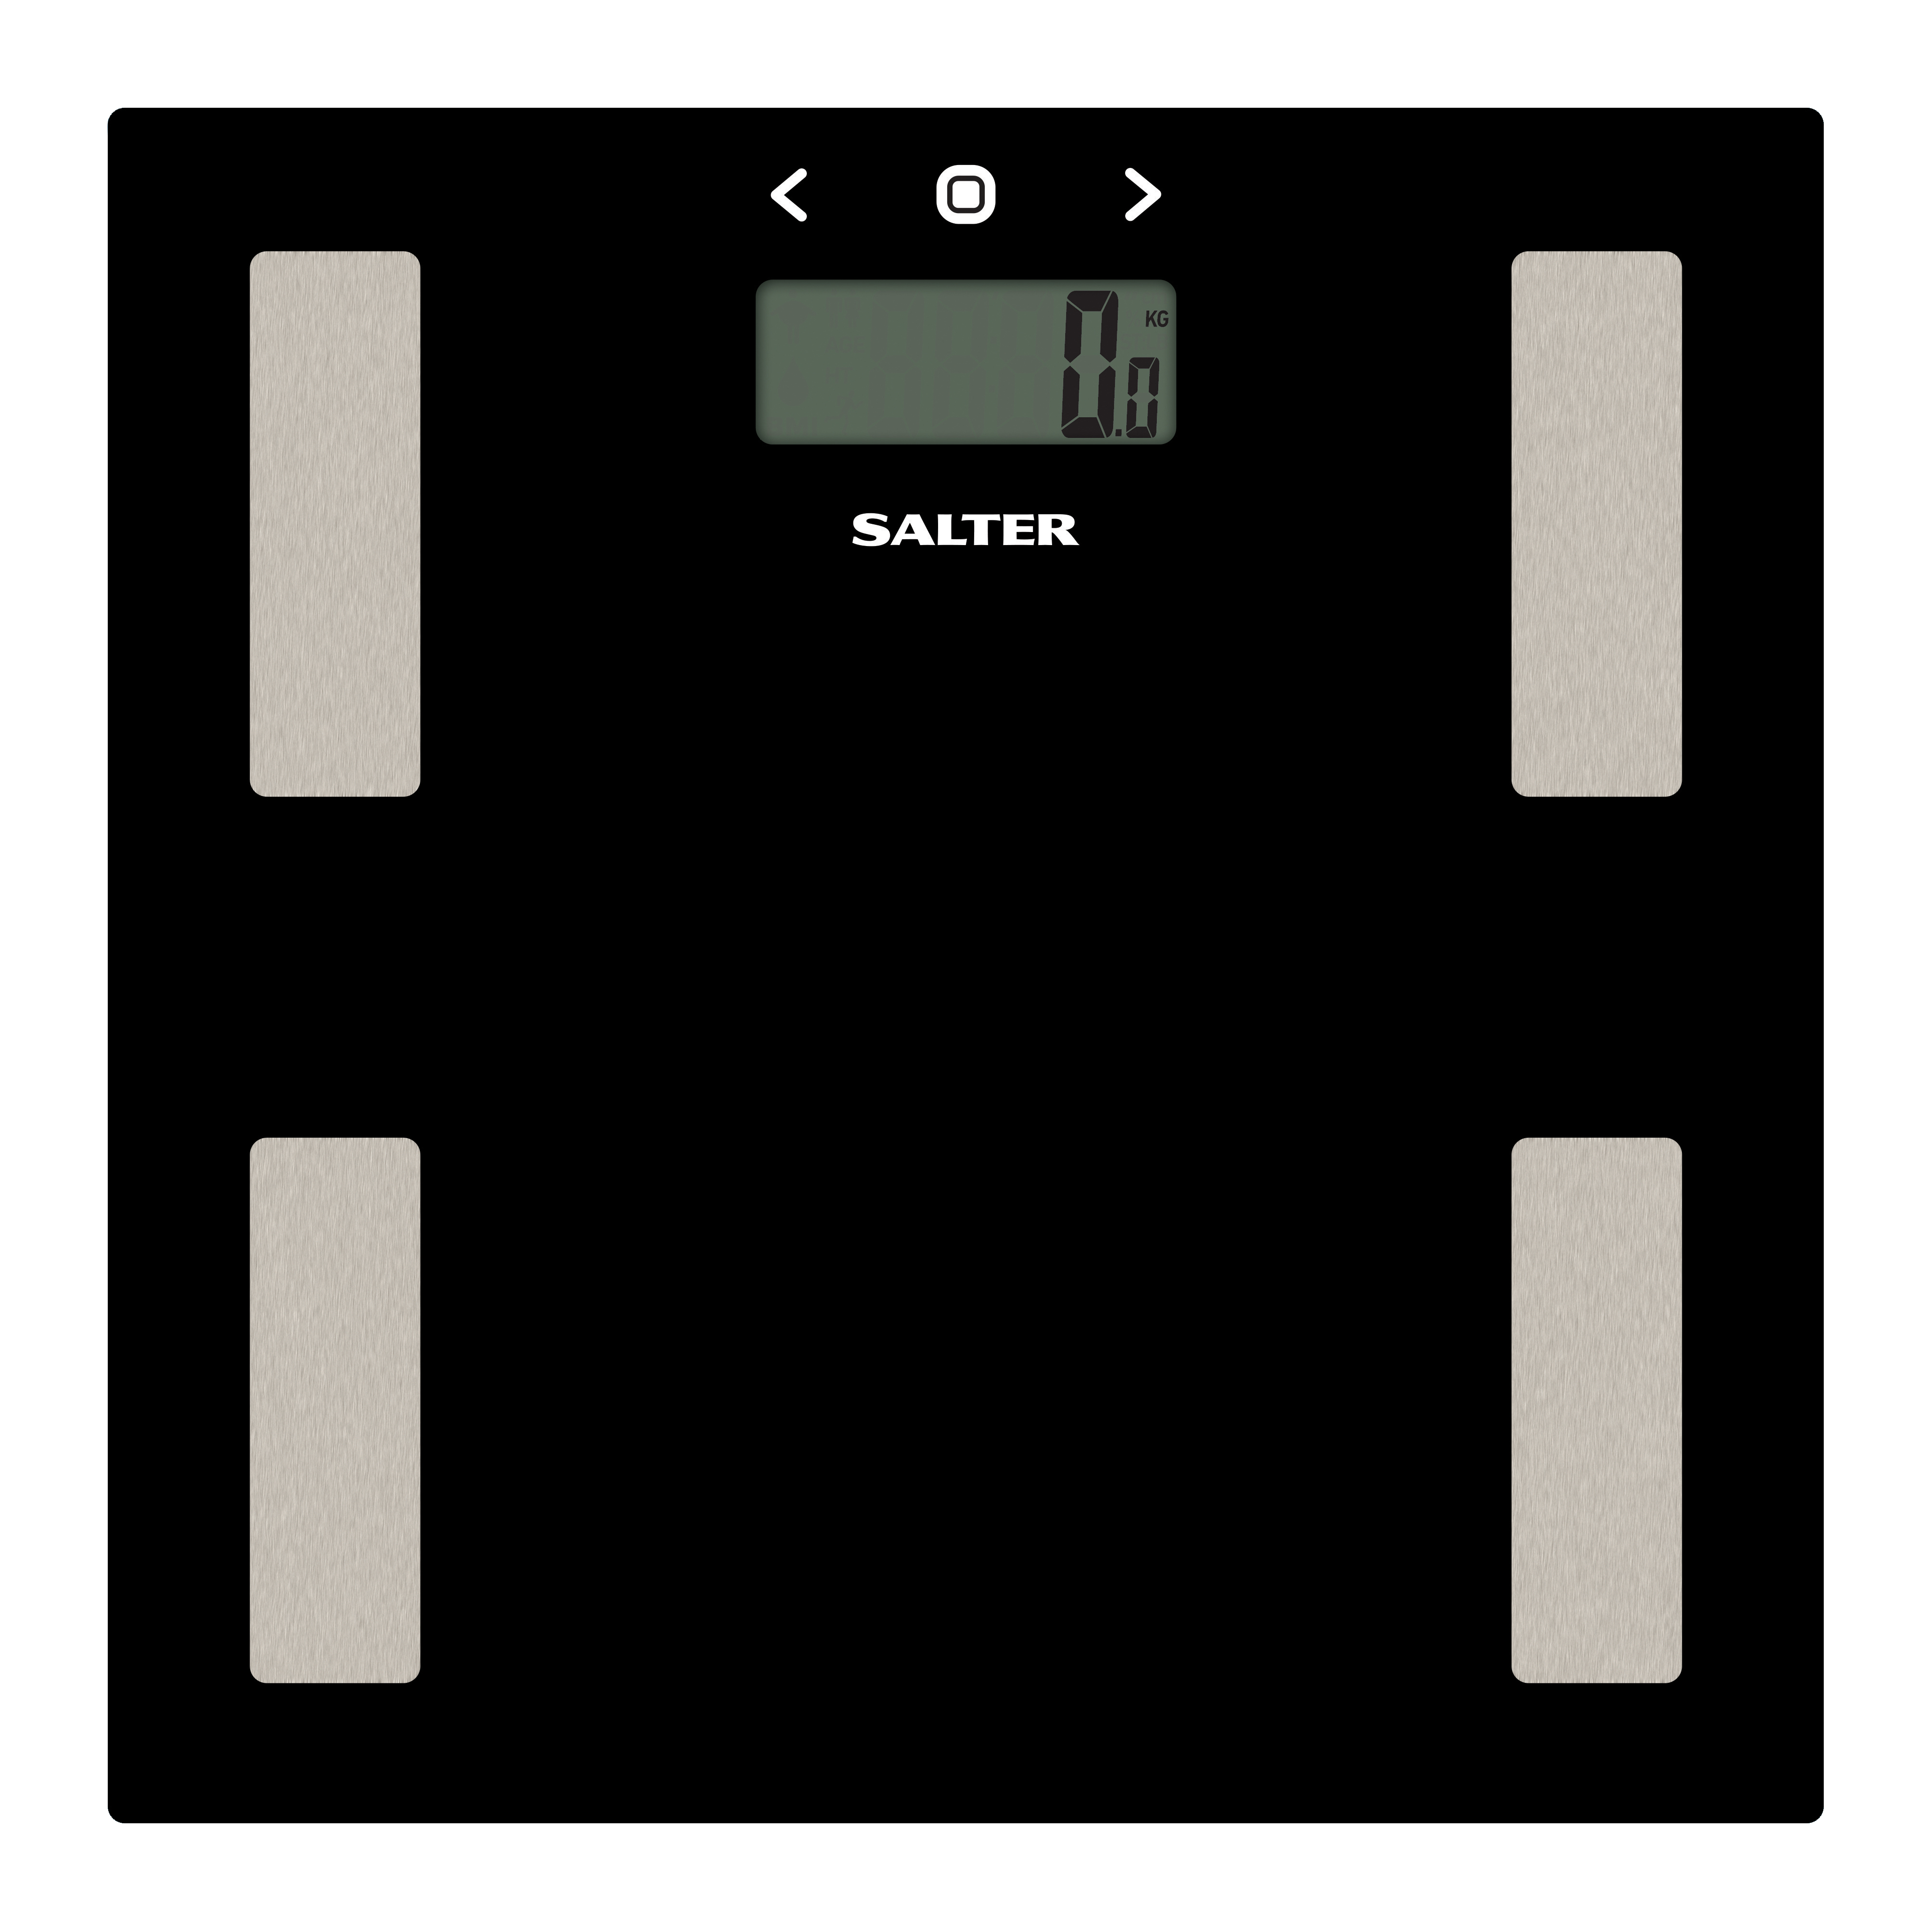 measuring body fat percentage accurately